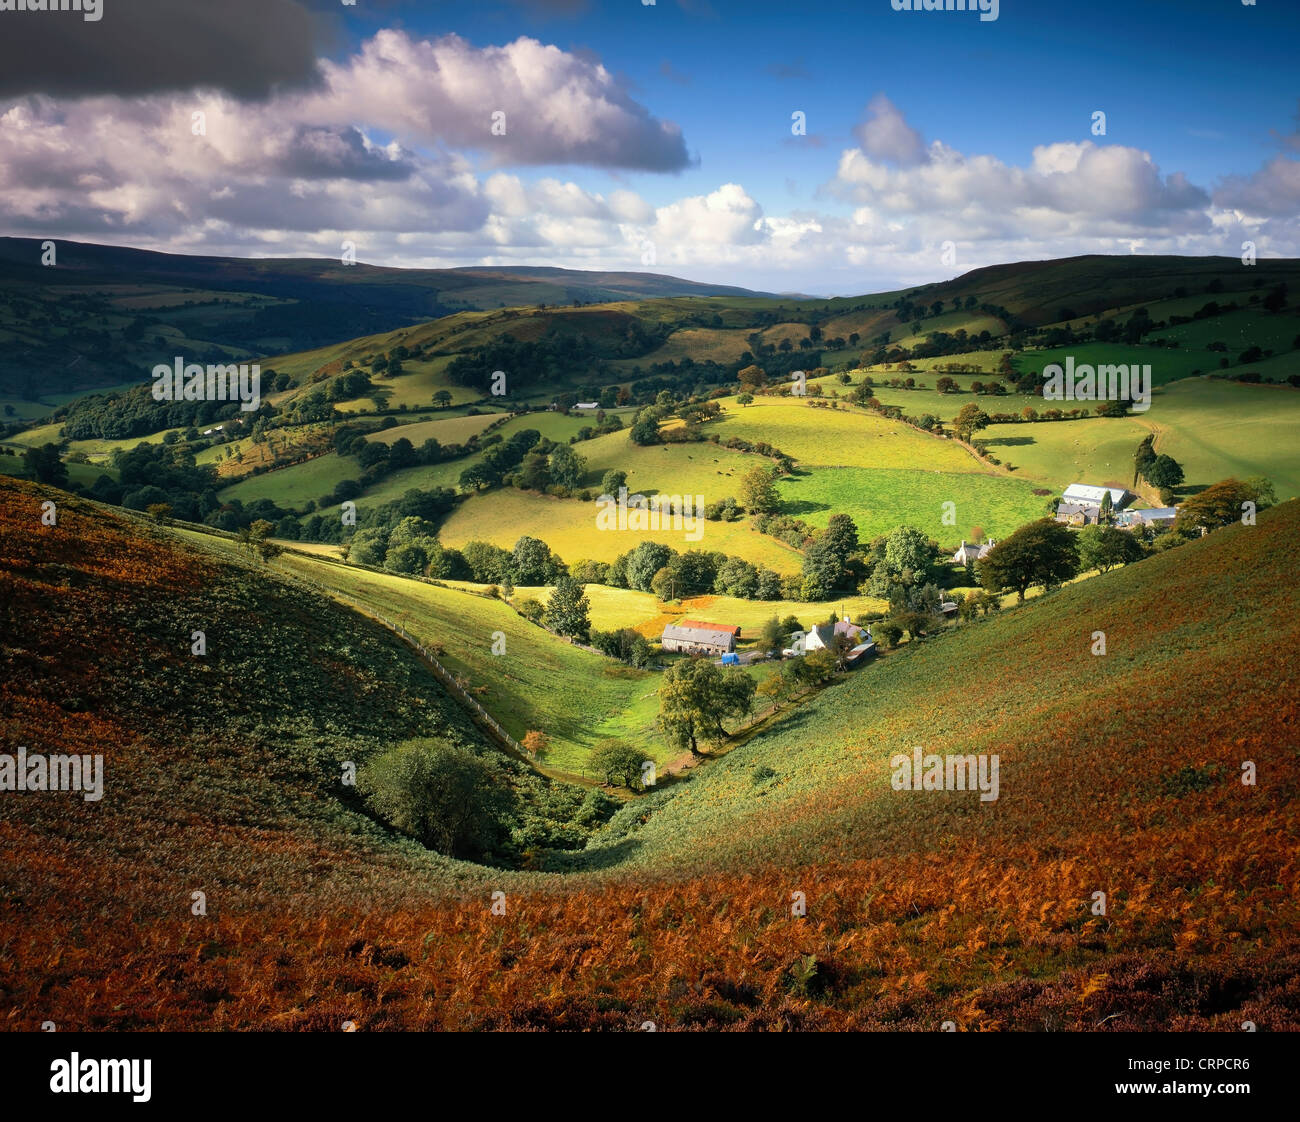 View across a fern-clad valley in the Llantysilio Hills in late summer. - Stock Image